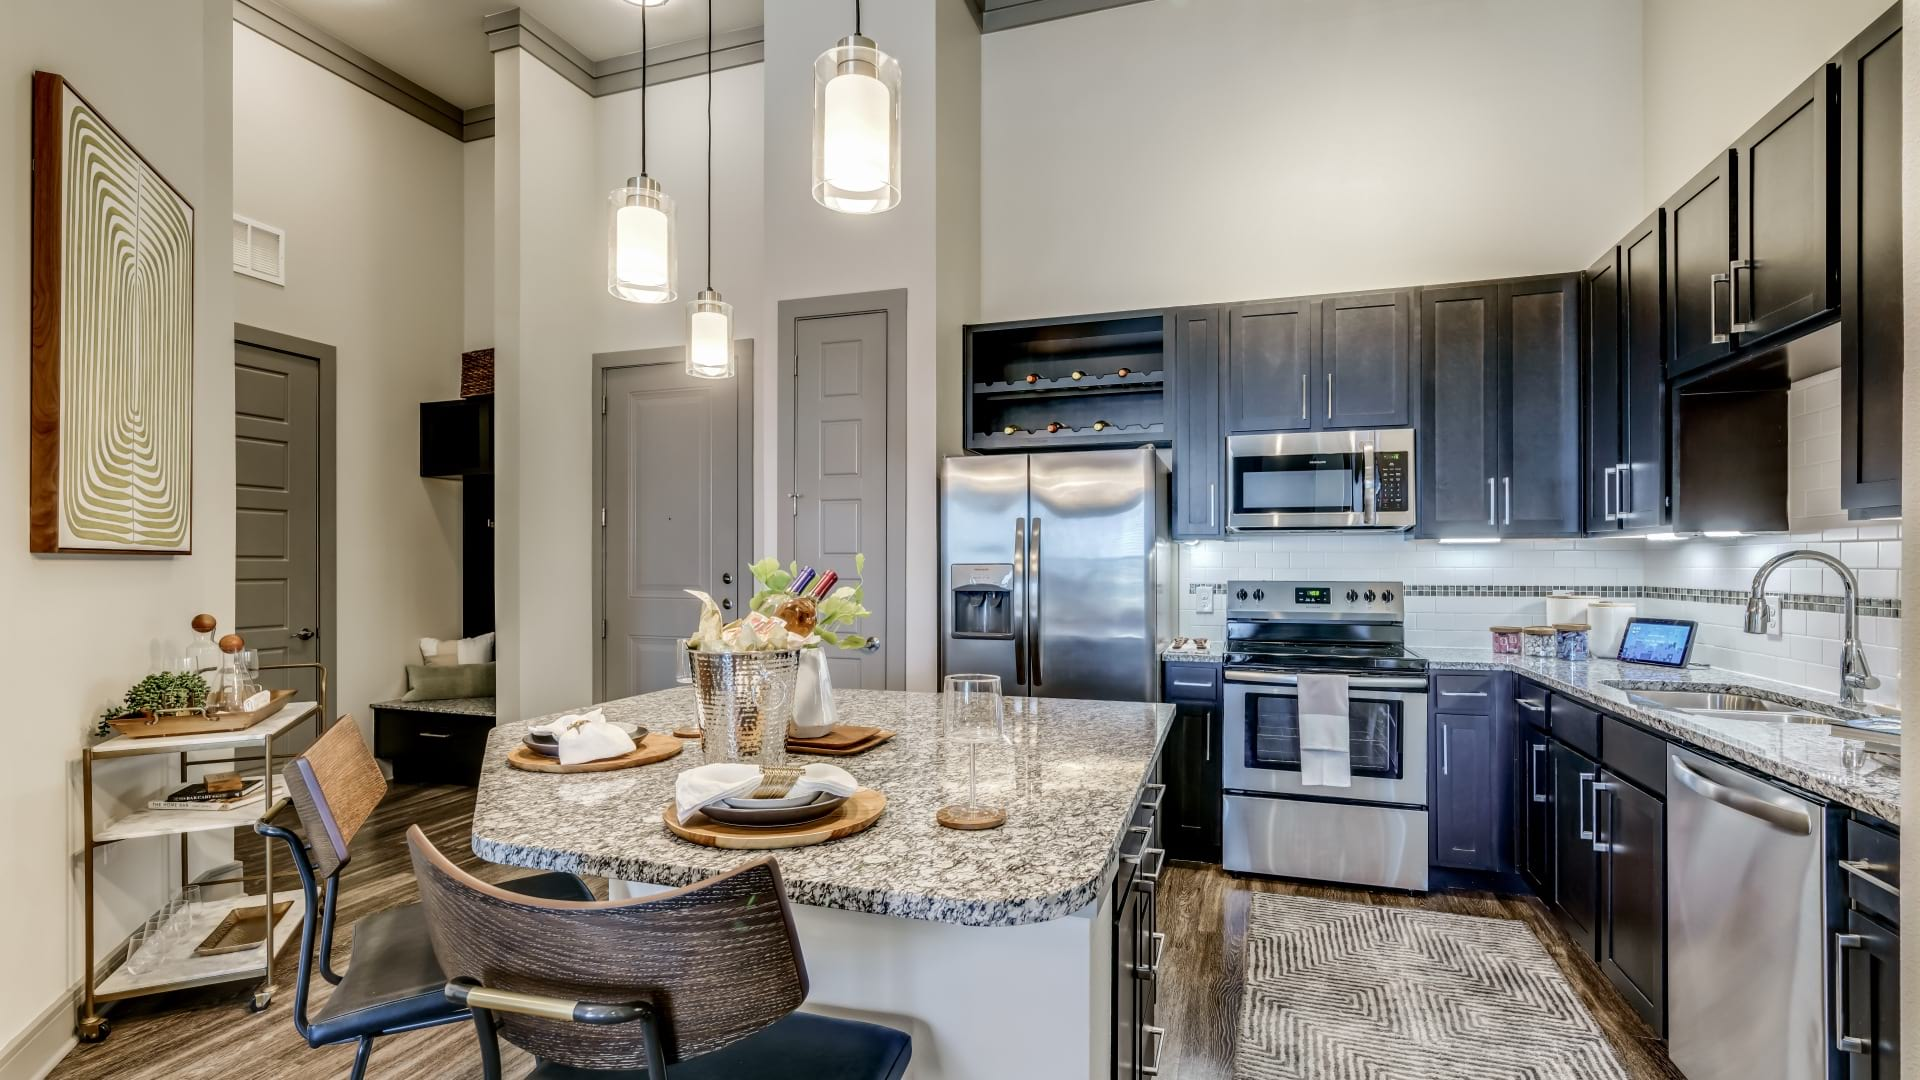 Cortland apartments in Frisco, TX with open concept kitchen including expansive kitchen island and modern cabinetry